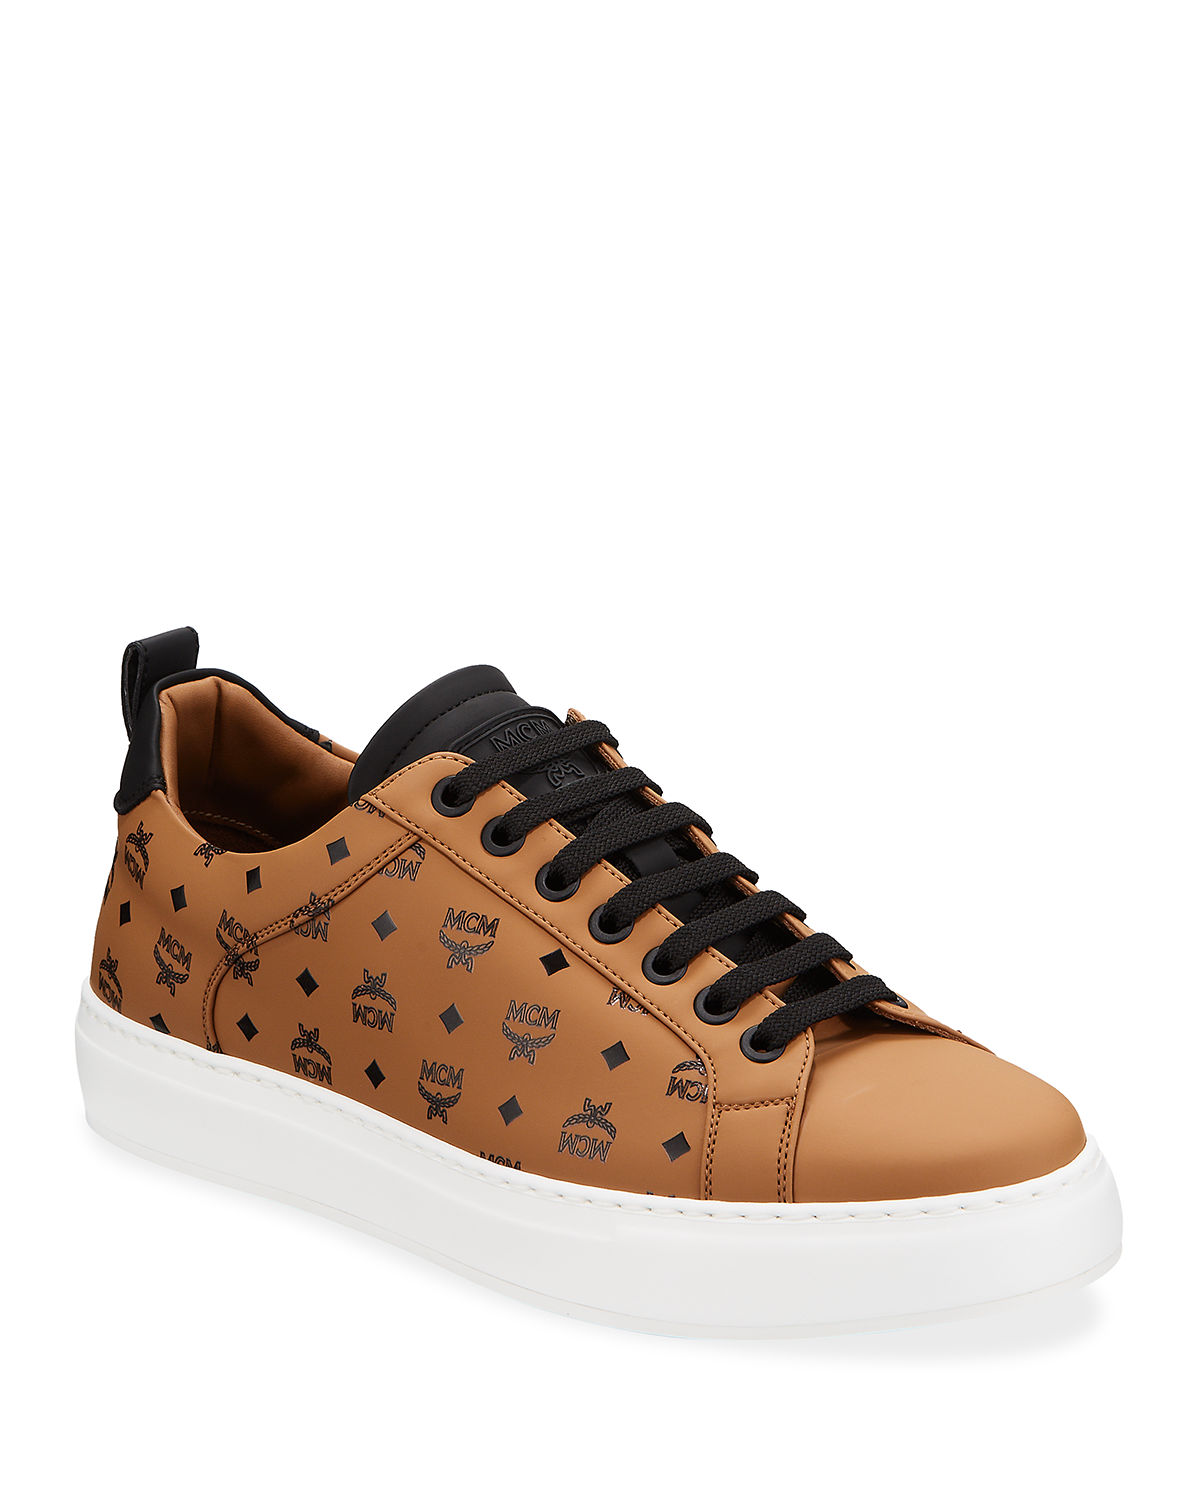 Mcm Sneakers MEN'S LOGO GROUP FAUX-LEATHER SNEAKERS